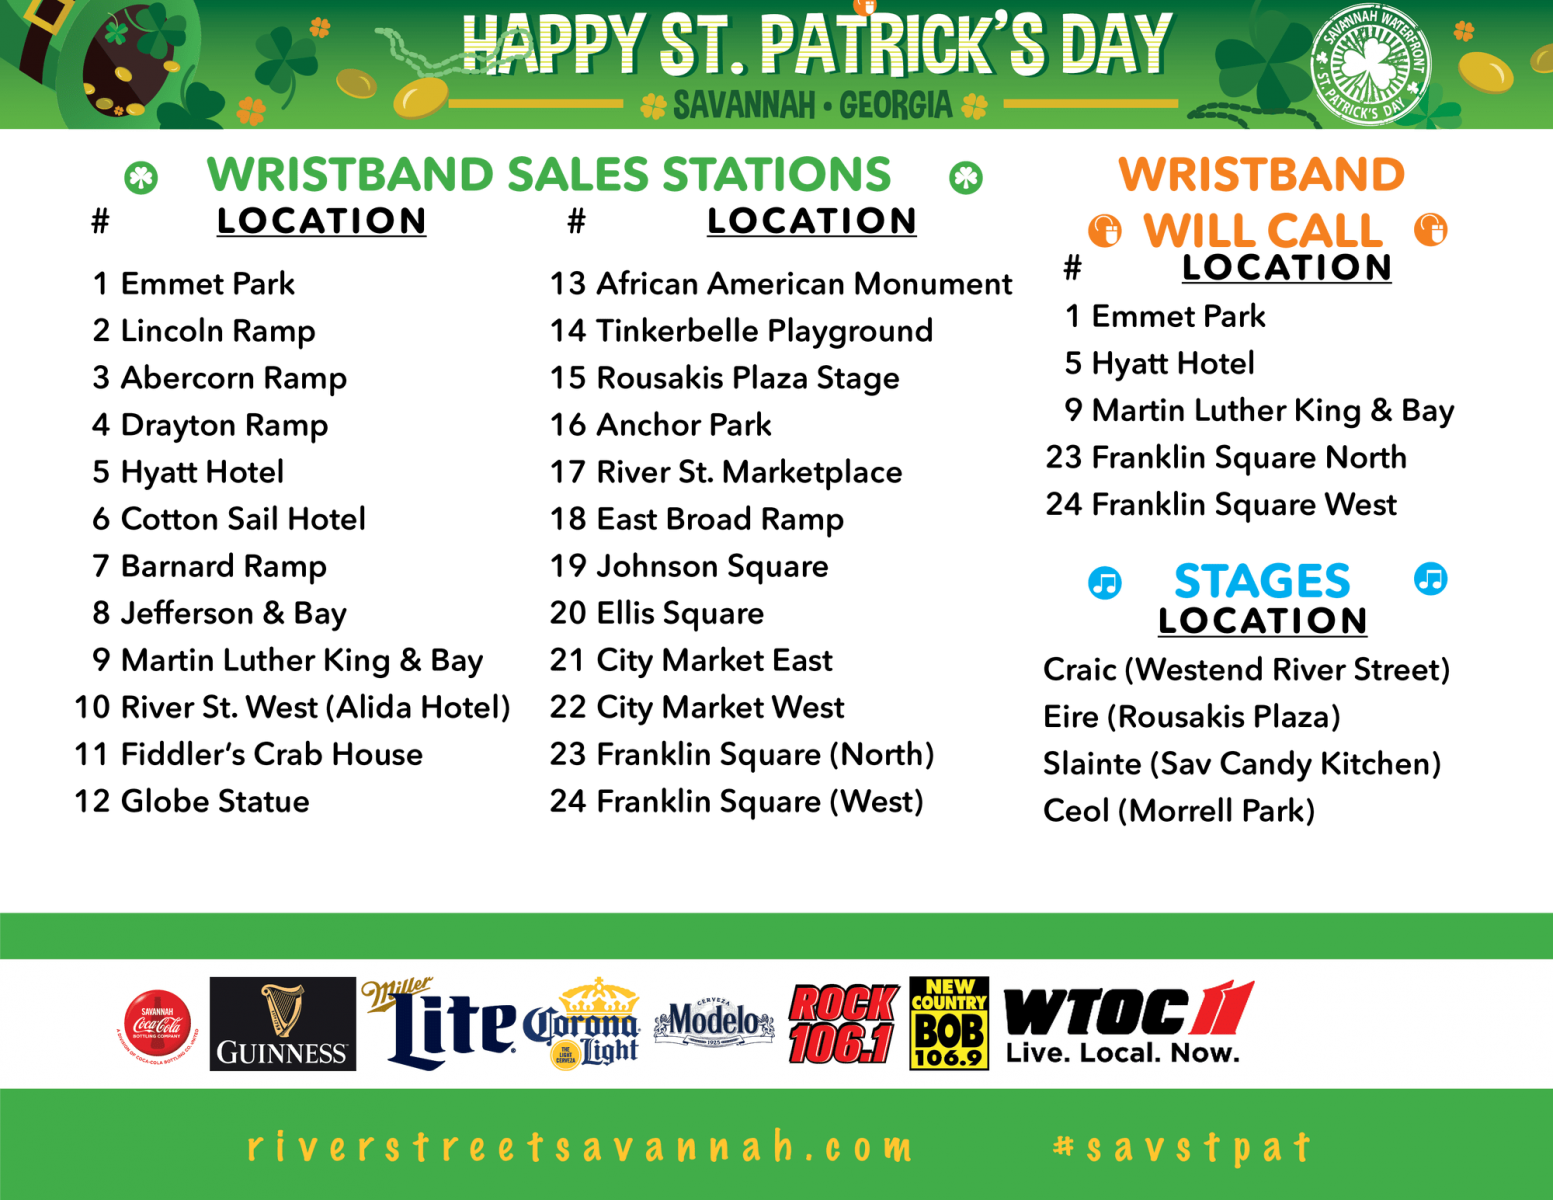 f7fd2917 The St. Patrick's Day Parade in Savannah is not only one of the biggest  Irish celebrations in the country, but notably one of the biggest parades  in the ...